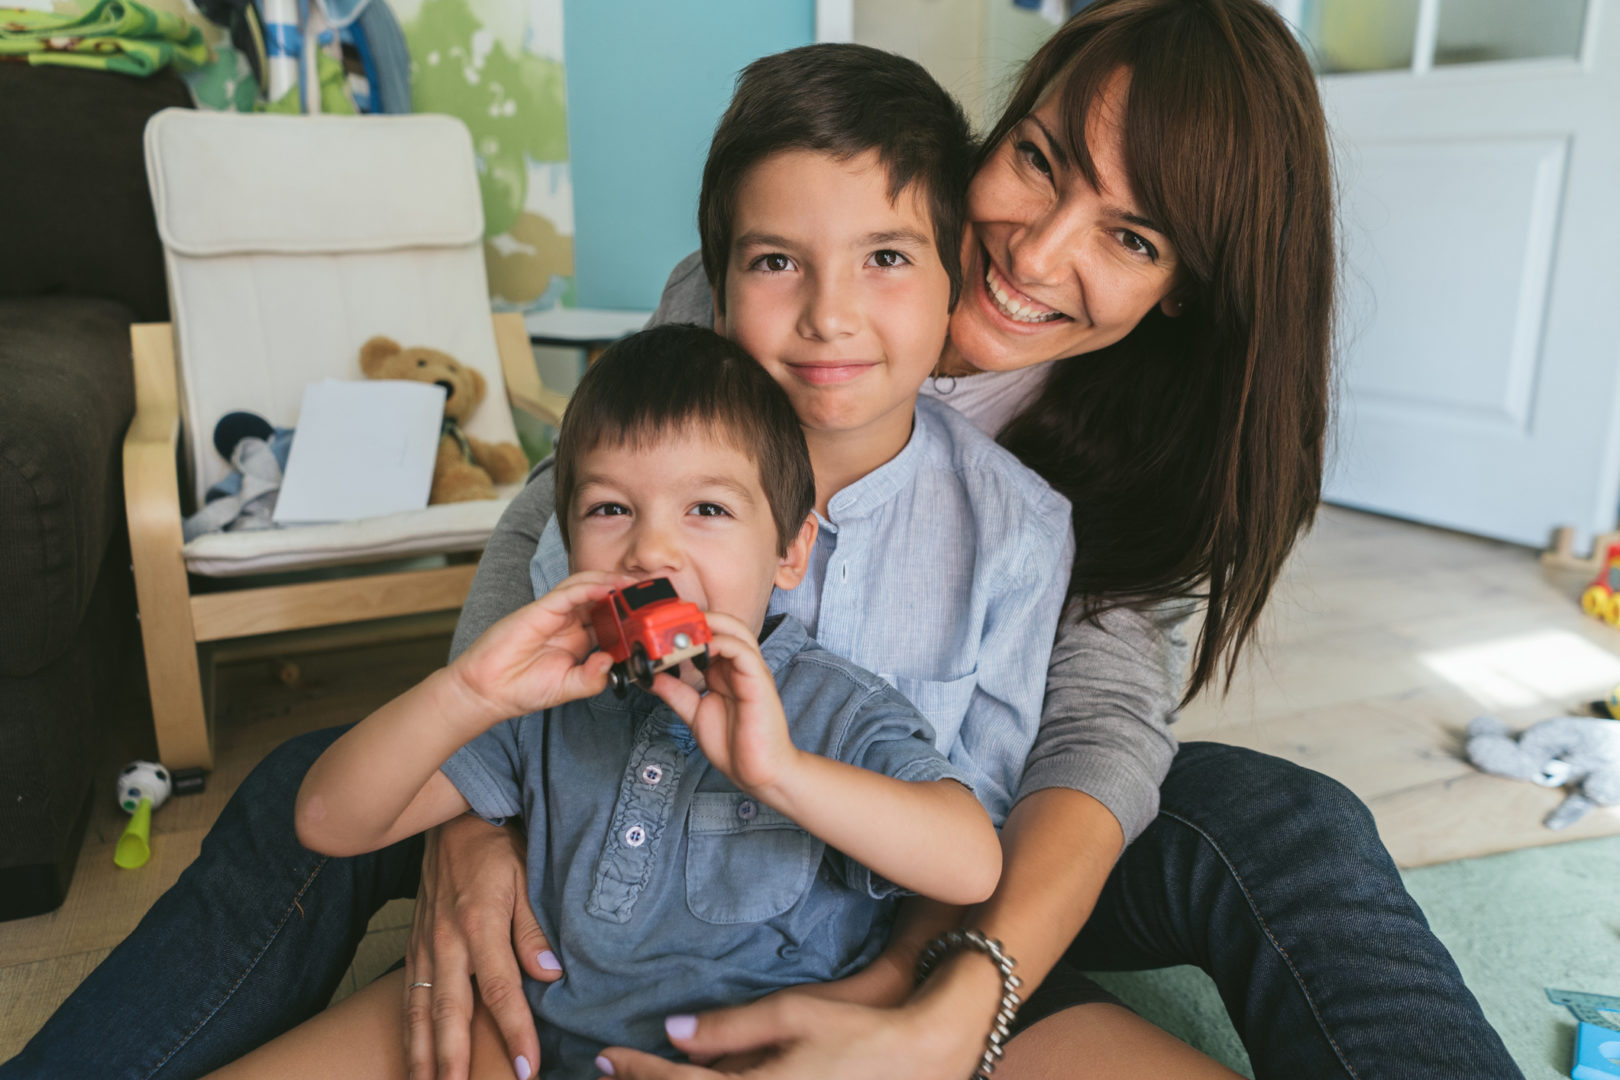 Live-in nanny vs. au pair: What's the difference?